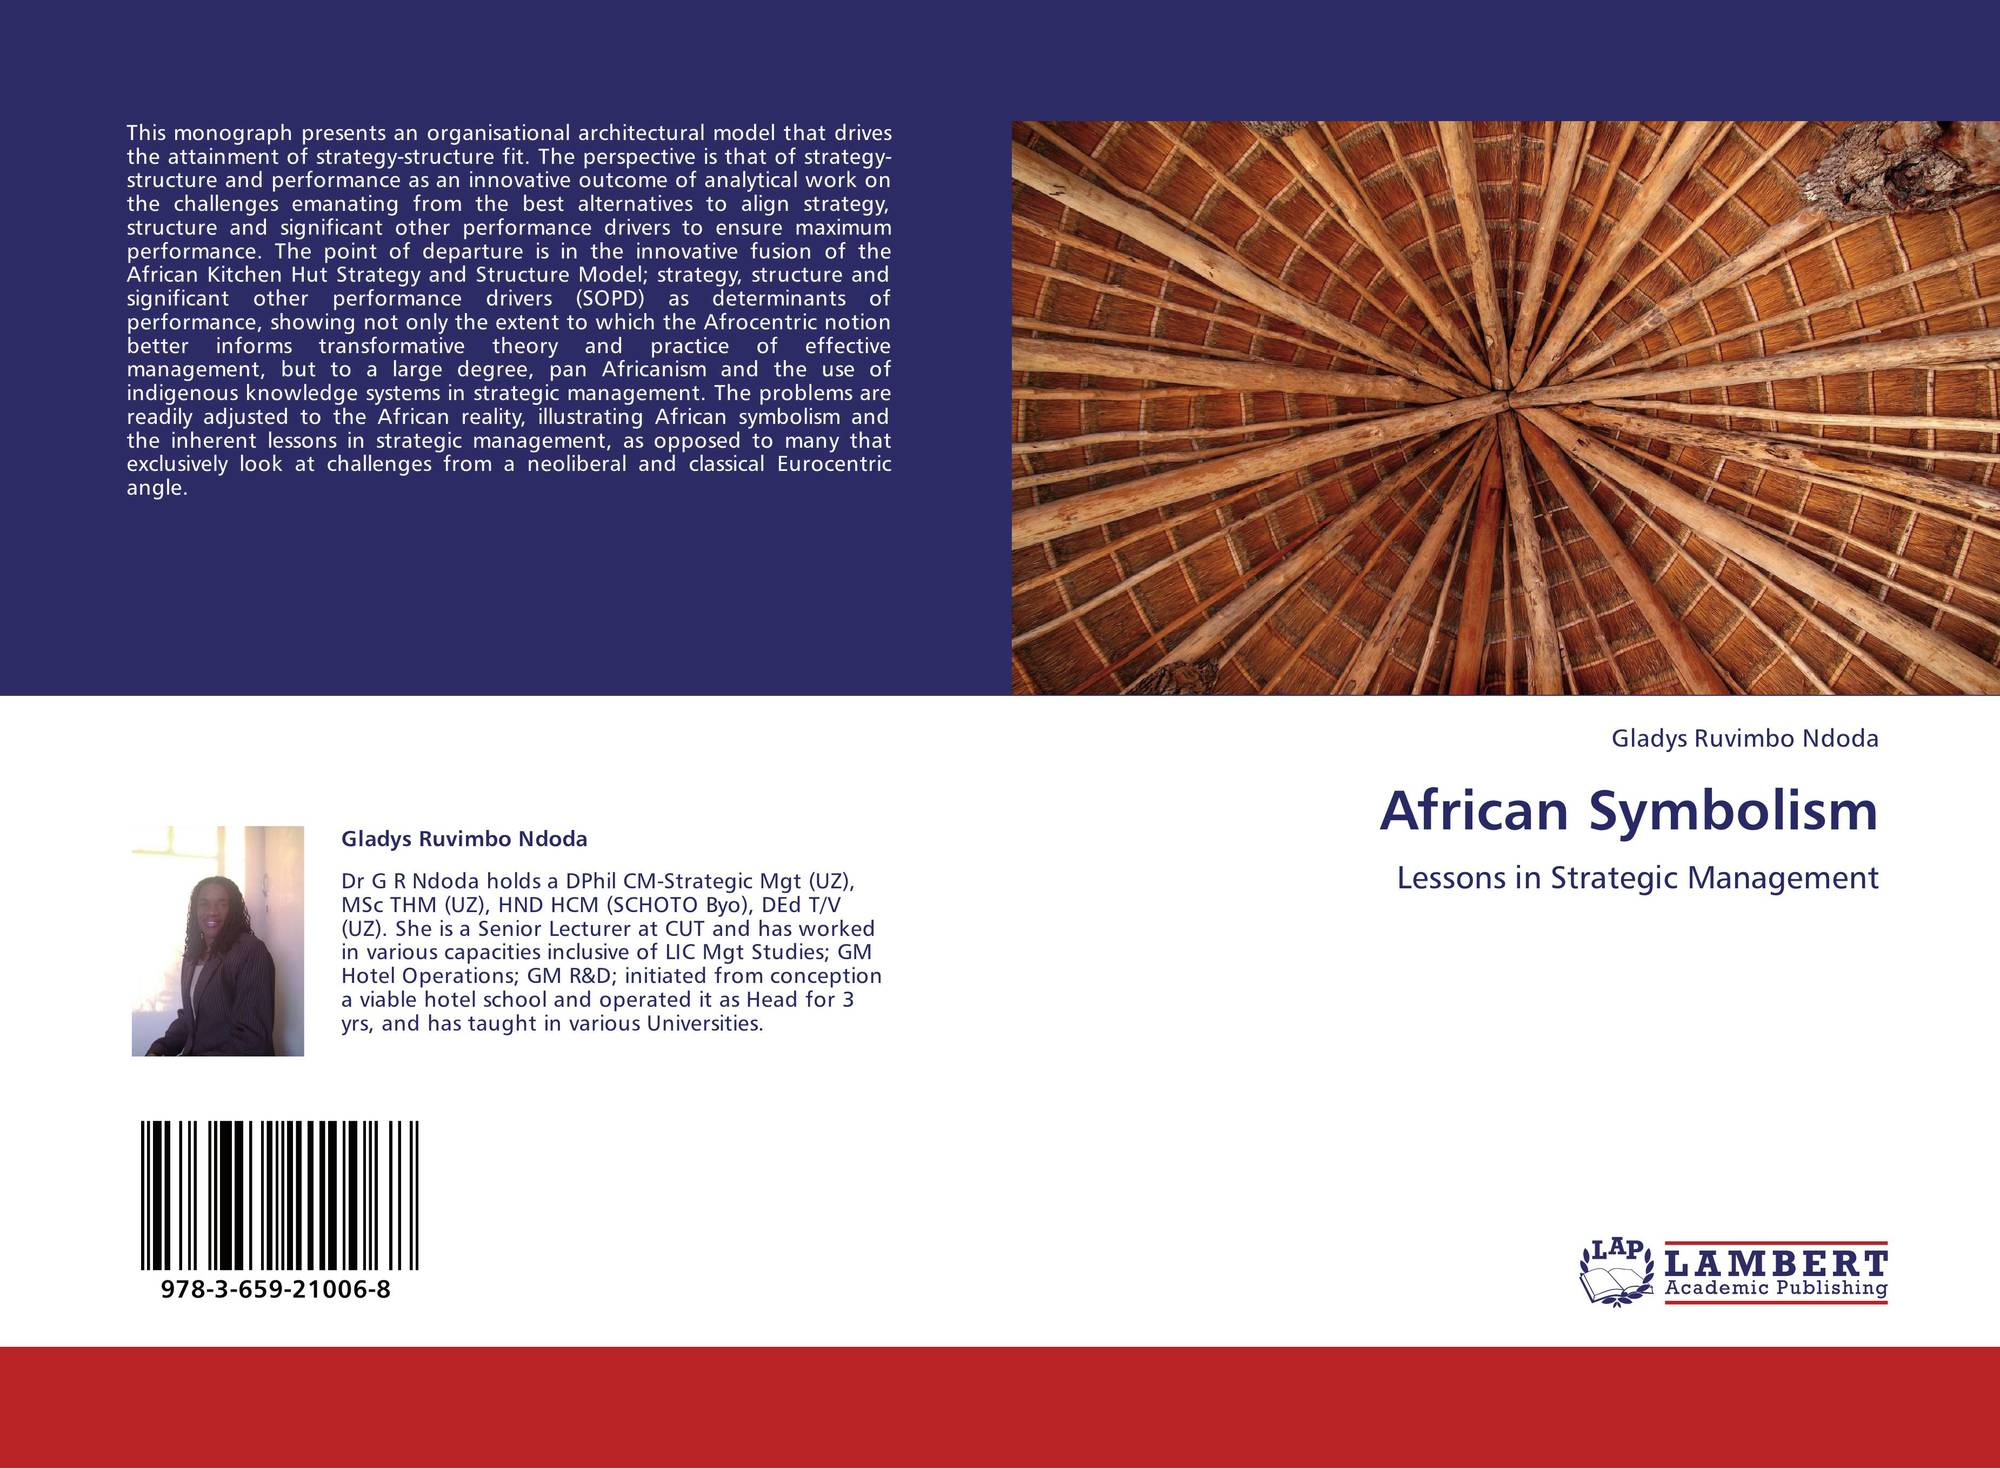 afrocentric vs eurocentric worldviews Afrocentric investment corporation limited ('afrocentric') is a black-owned, diversified investment holding company established in 2006 and listed on the jse afrocentric has specifically invested in businesses that demonstrate favourable prospects for growth while actively contributing to the.